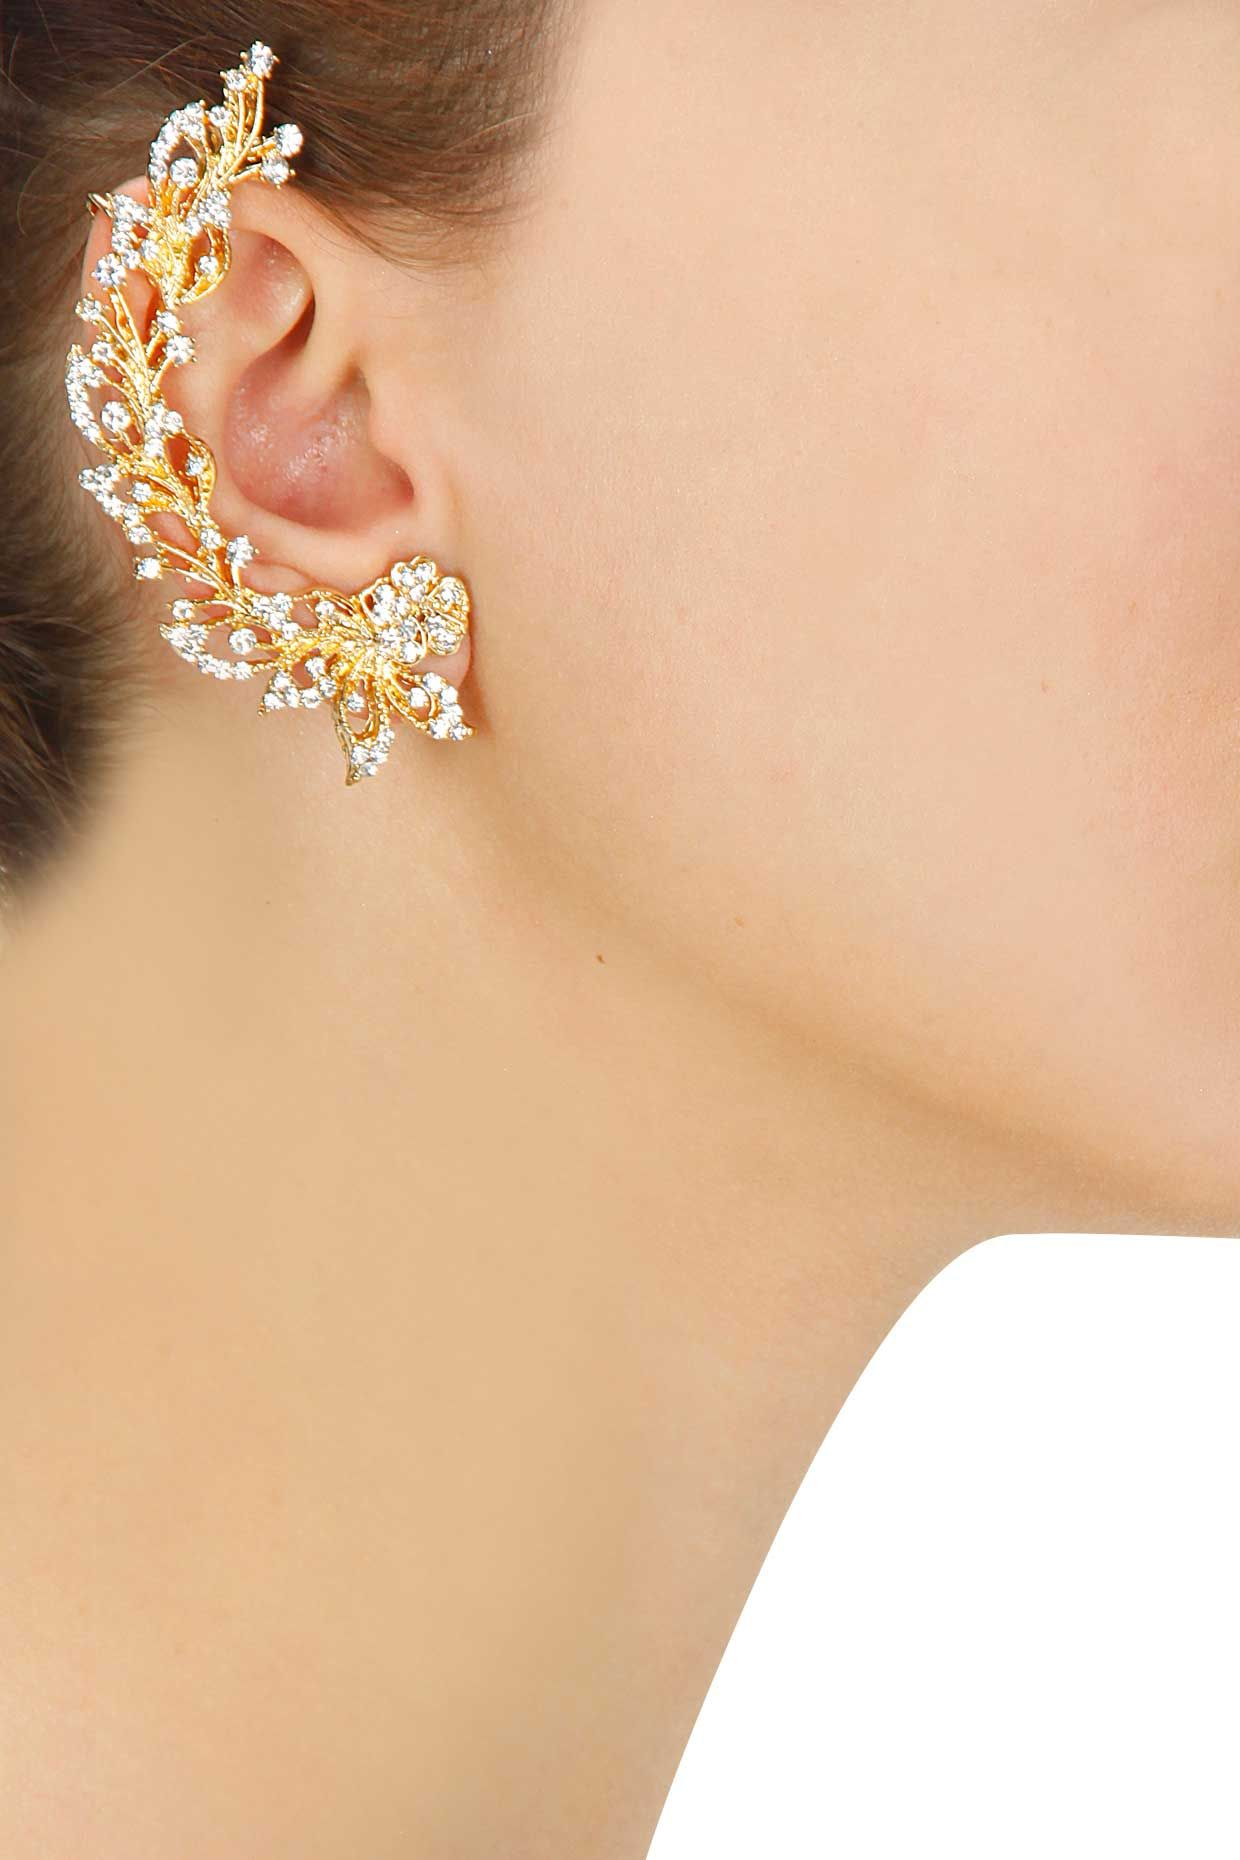 Gold Plated Crystal Branch Earcuff With Flower Stud Earring Set Available  Only At Pernia's Pop